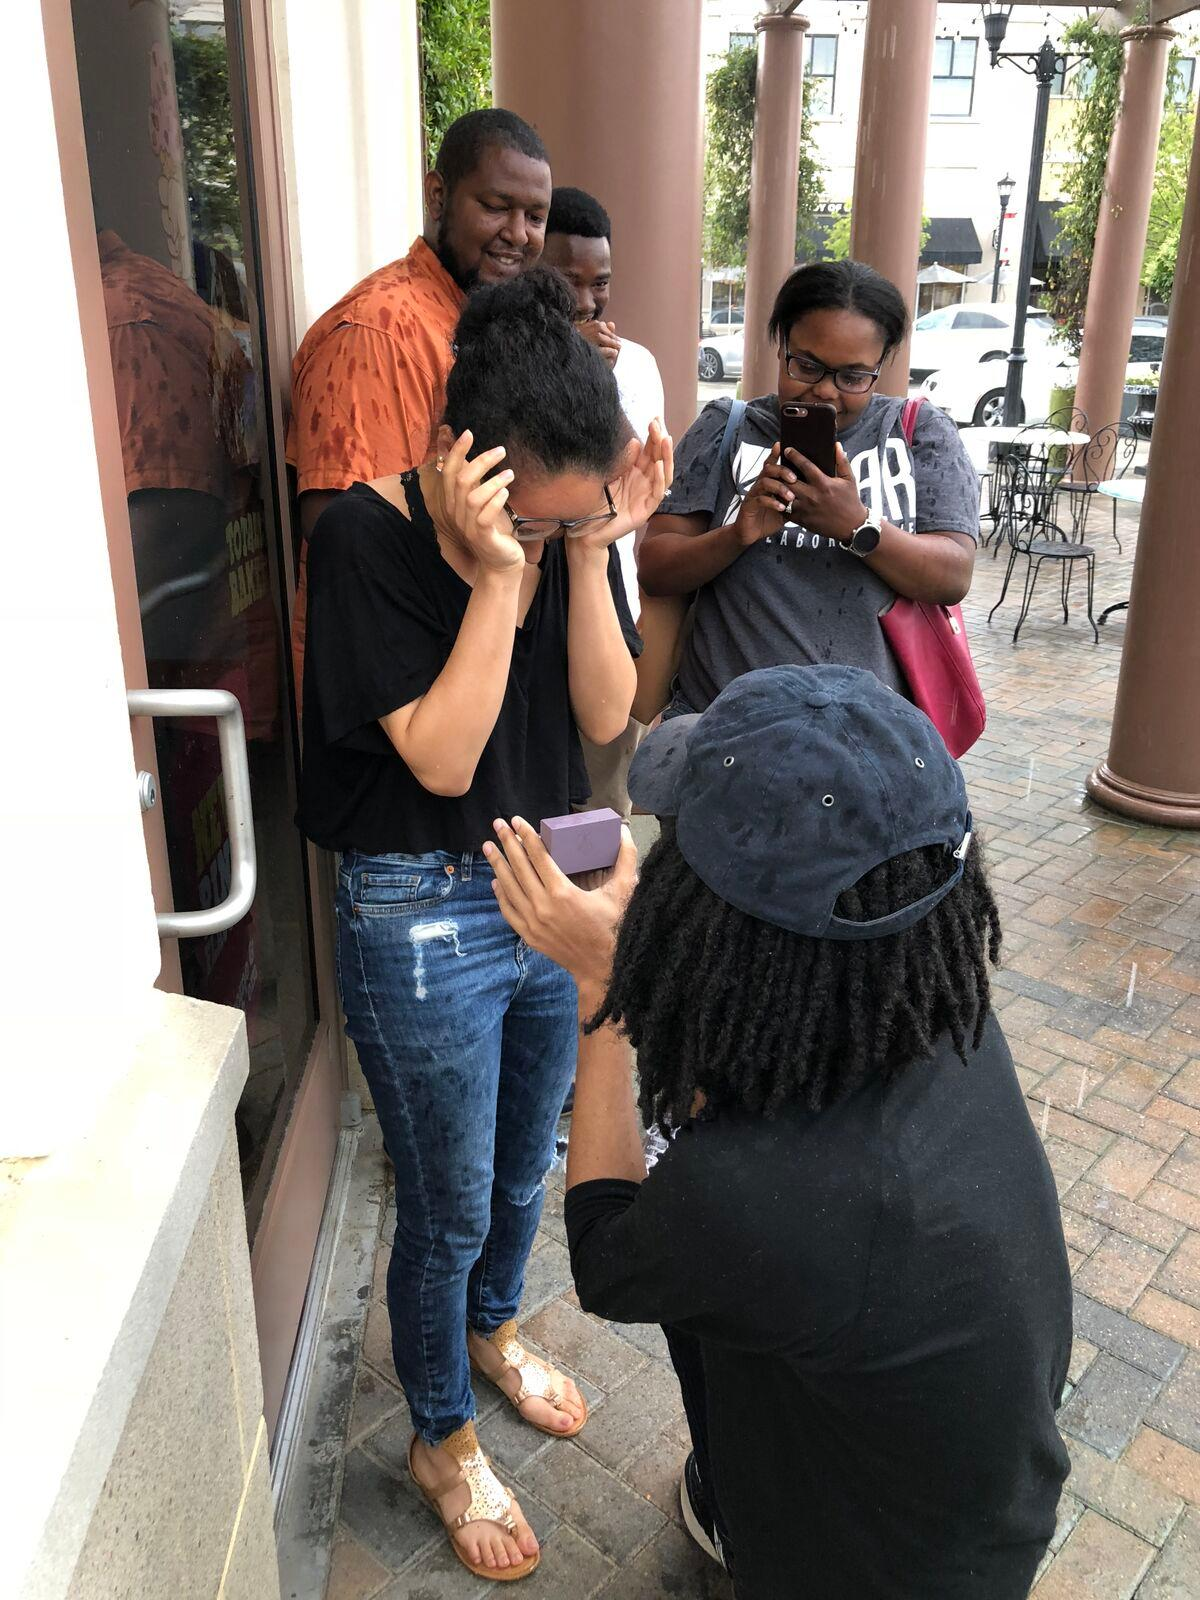 Zechariah's Diamond's Direct Proposal